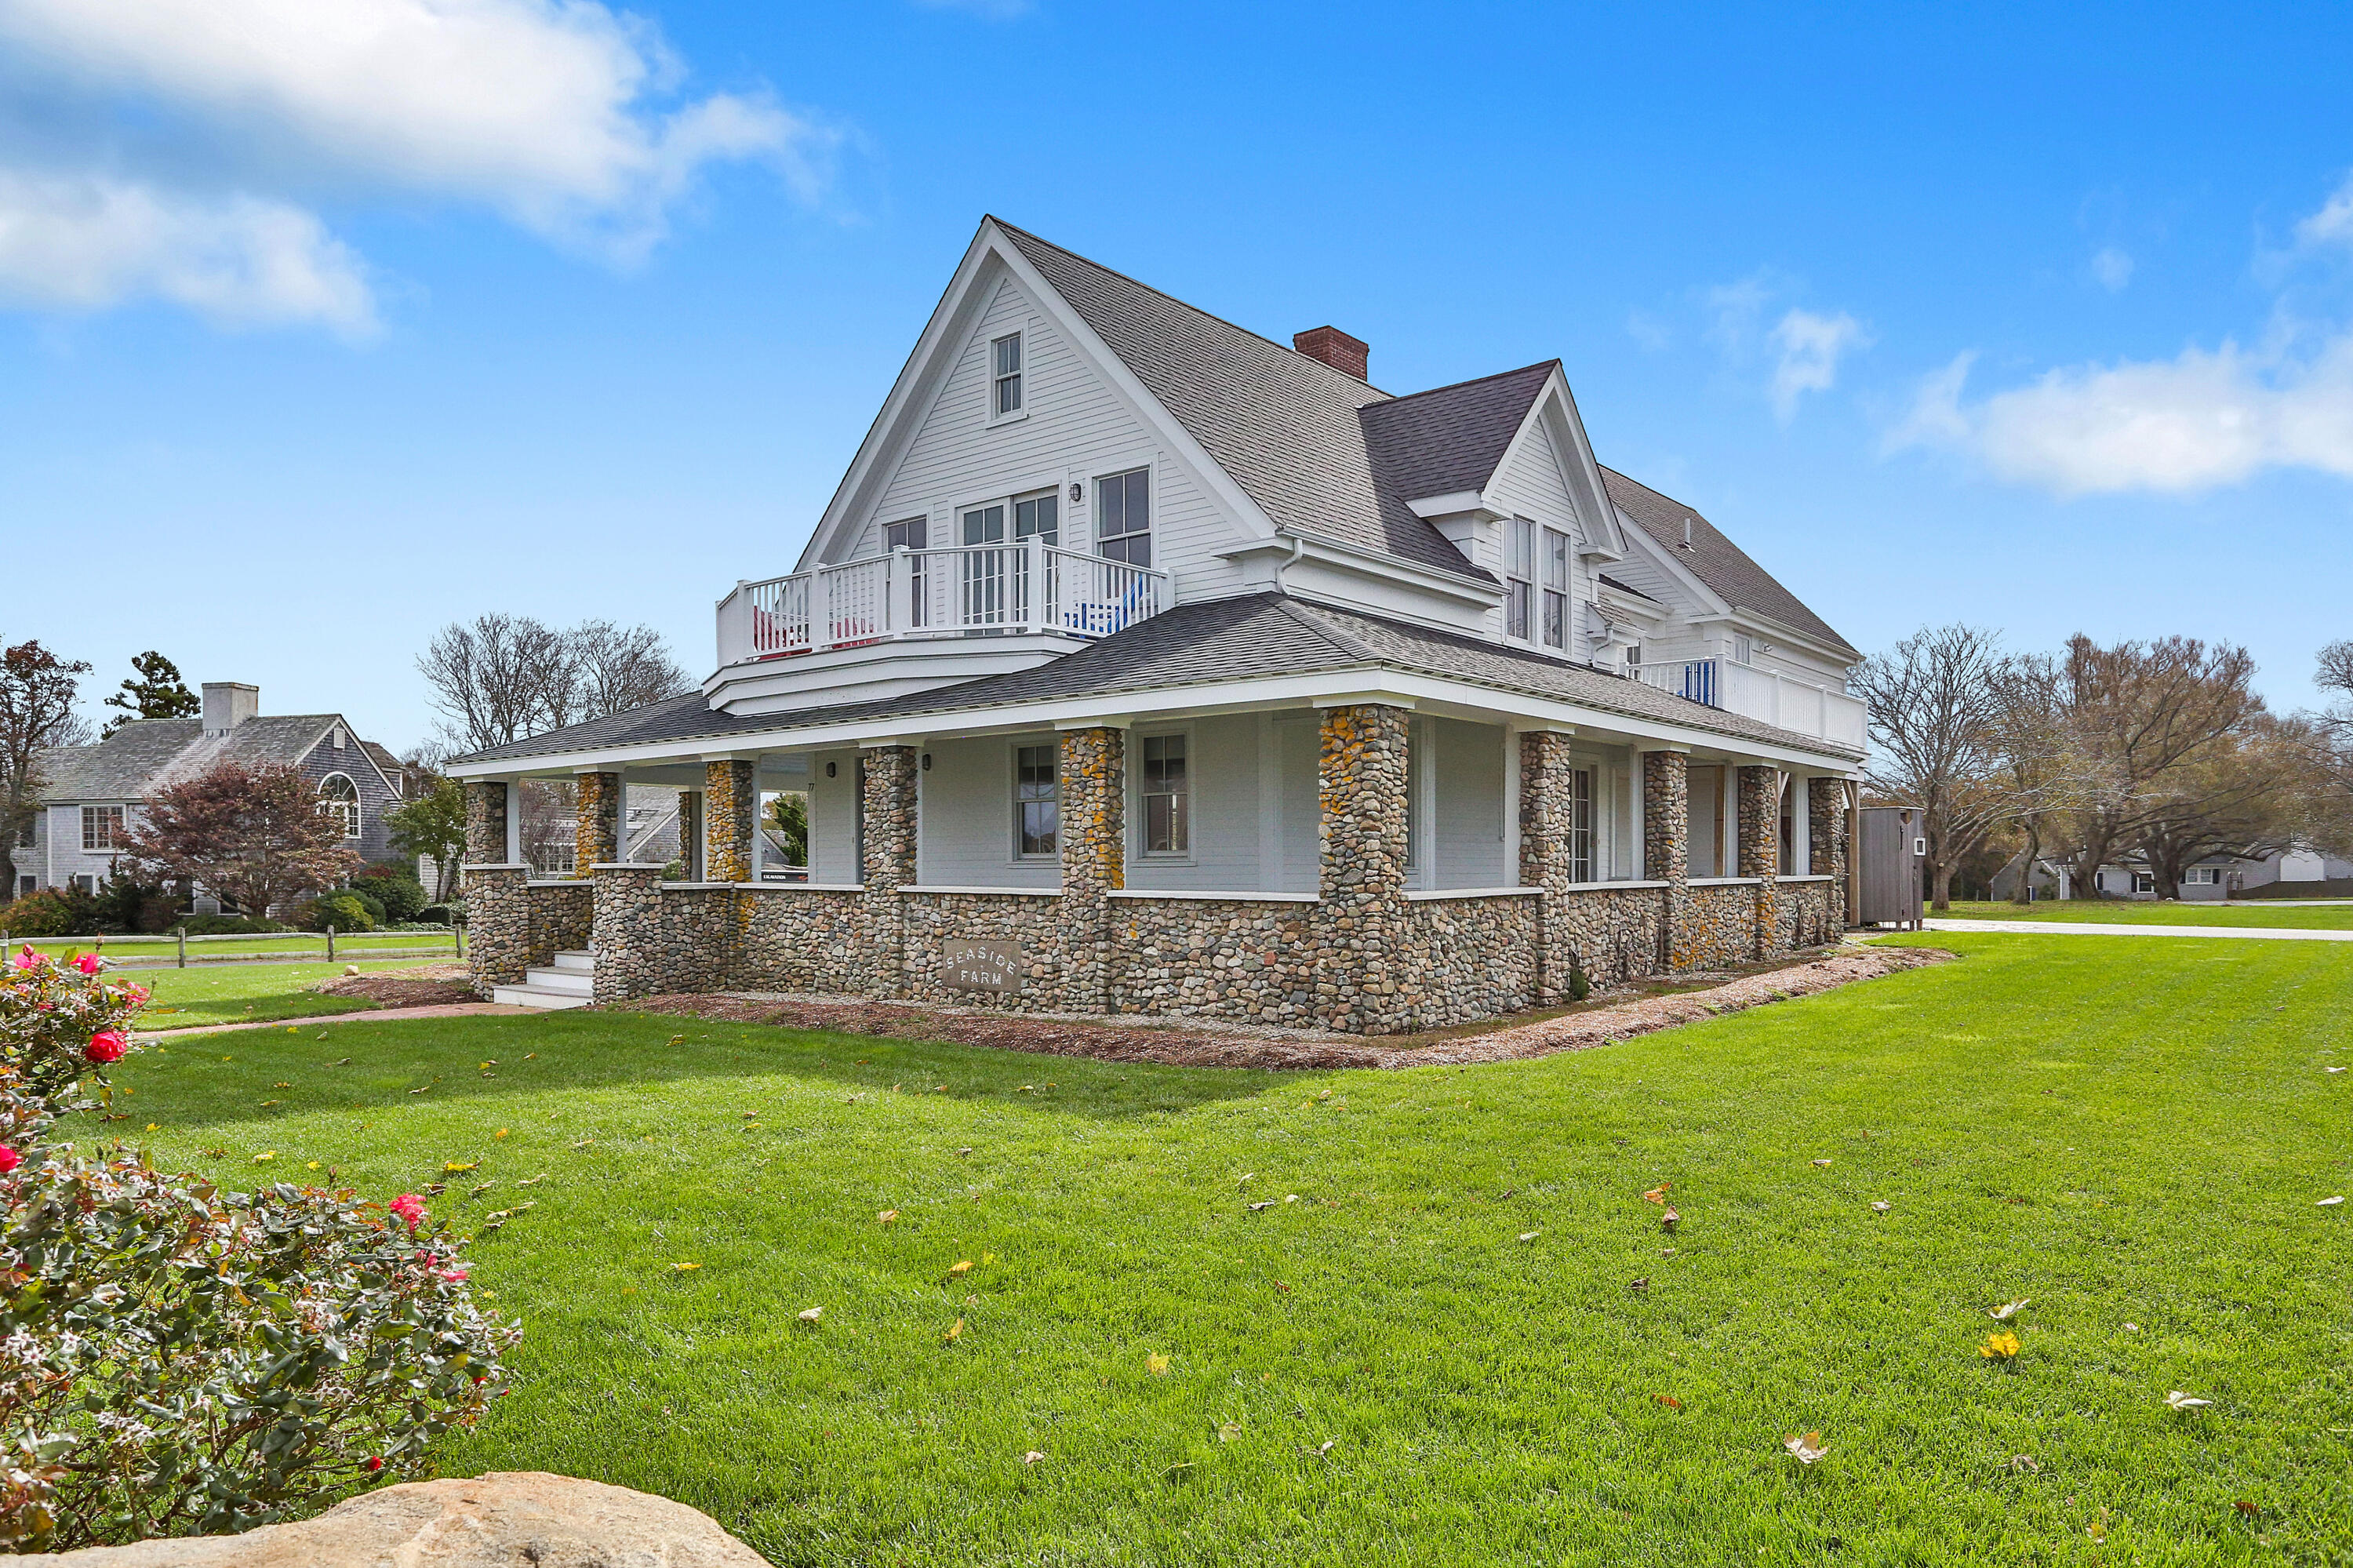 click to view more details 77 Seaside Avenue, Dennis, MA 02638